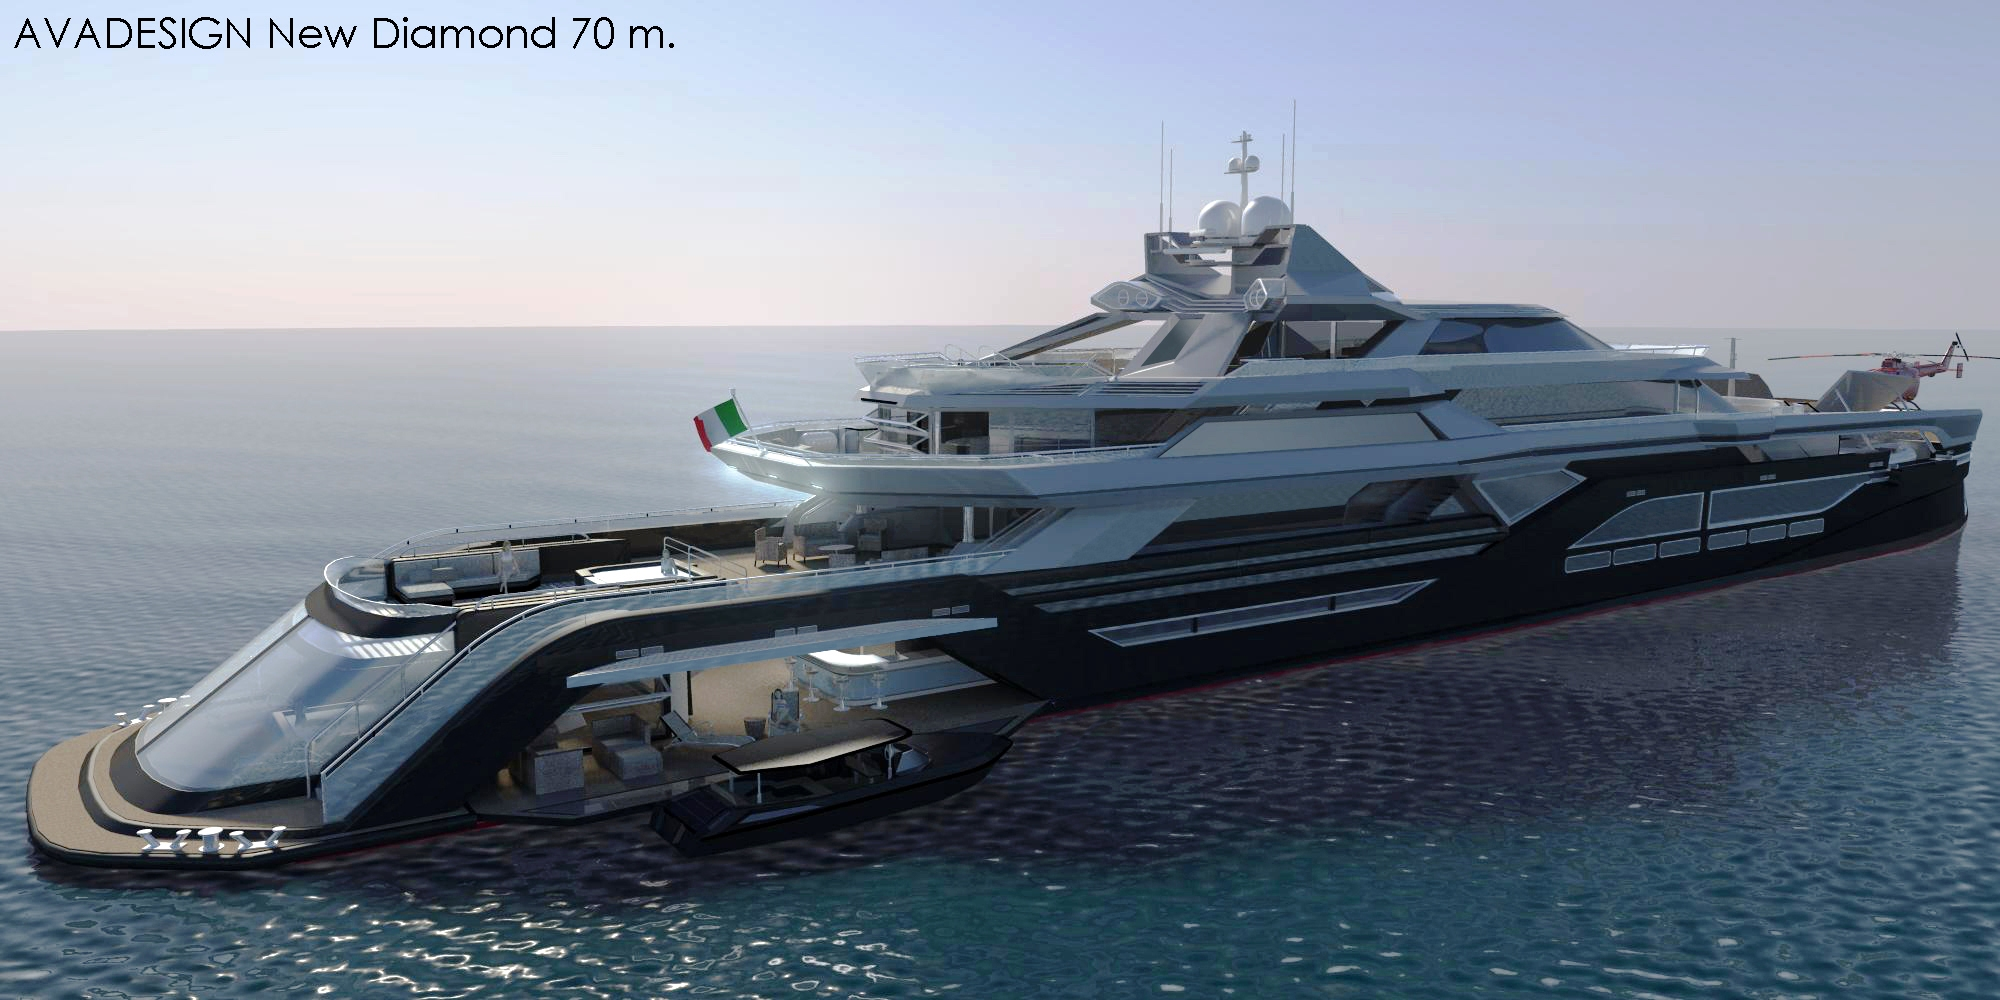 Modern Home Design Floor Plans The 70m New Diamond Superyacht Design Project Aft